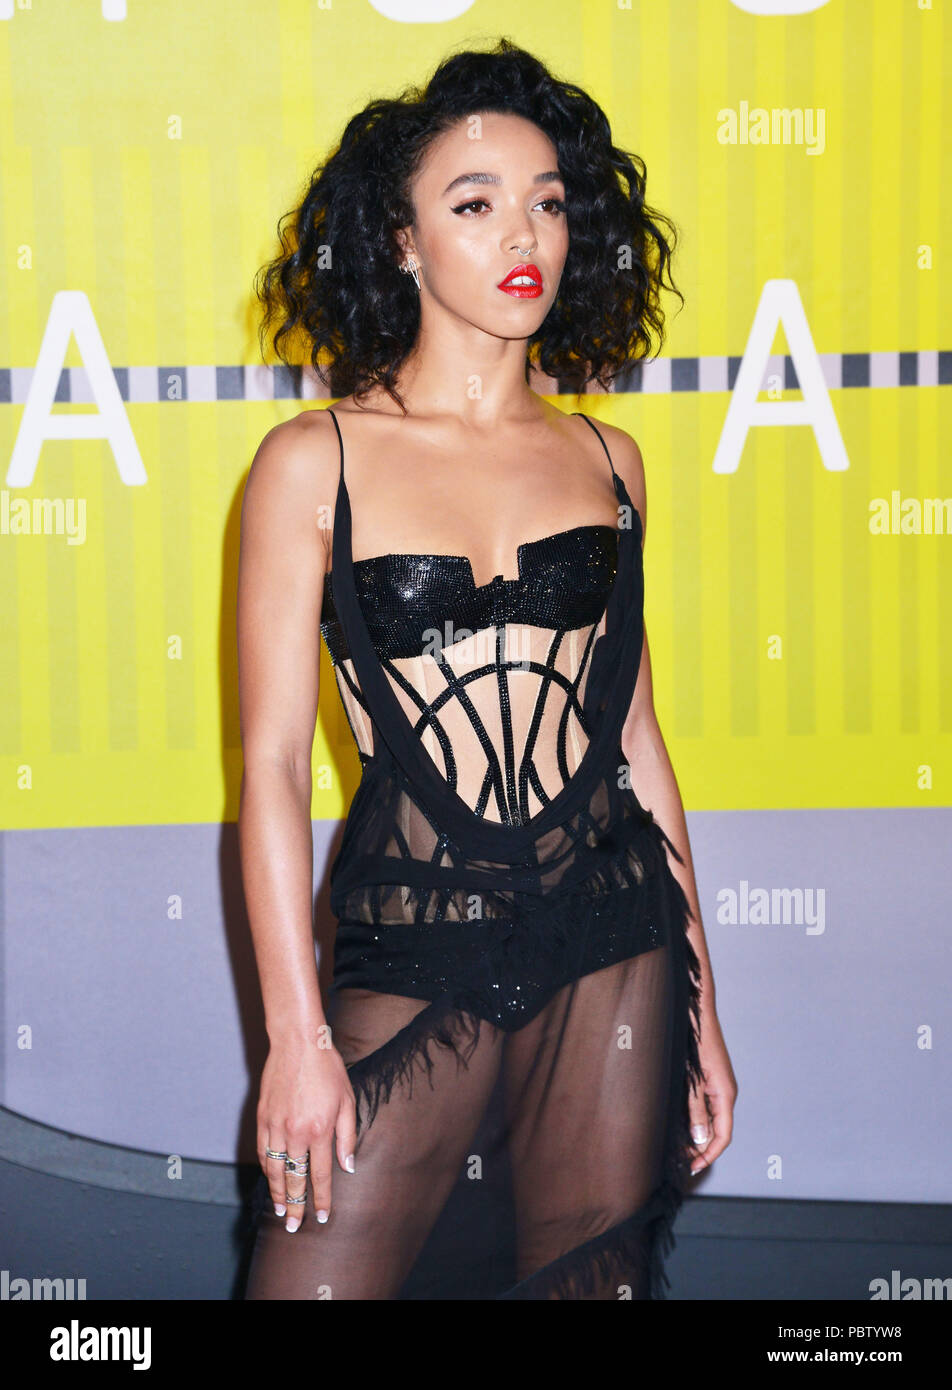 FKA Twigs 408  at the MTV VMA Awards 2015 at the Microsoft Theatre in Los Angeles. August 30, 2015.FKA Twigs 408 ------------- Red Carpet Event, Vertical, USA, Film Industry, Celebrities,  Photography, Bestof, Arts Culture and Entertainment, Topix Celebrities fashion /  Vertical, Best of, Event in Hollywood Life - California,  Red Carpet and backstage, USA, Film Industry, Celebrities,  movie celebrities, TV celebrities, Music celebrities, Photography, Bestof, Arts Culture and Entertainment,  Topix, Three Quarters, vertical, one person,, from the year , 2015, inquiry tsuni@Gamma-USA.com - Stock Image